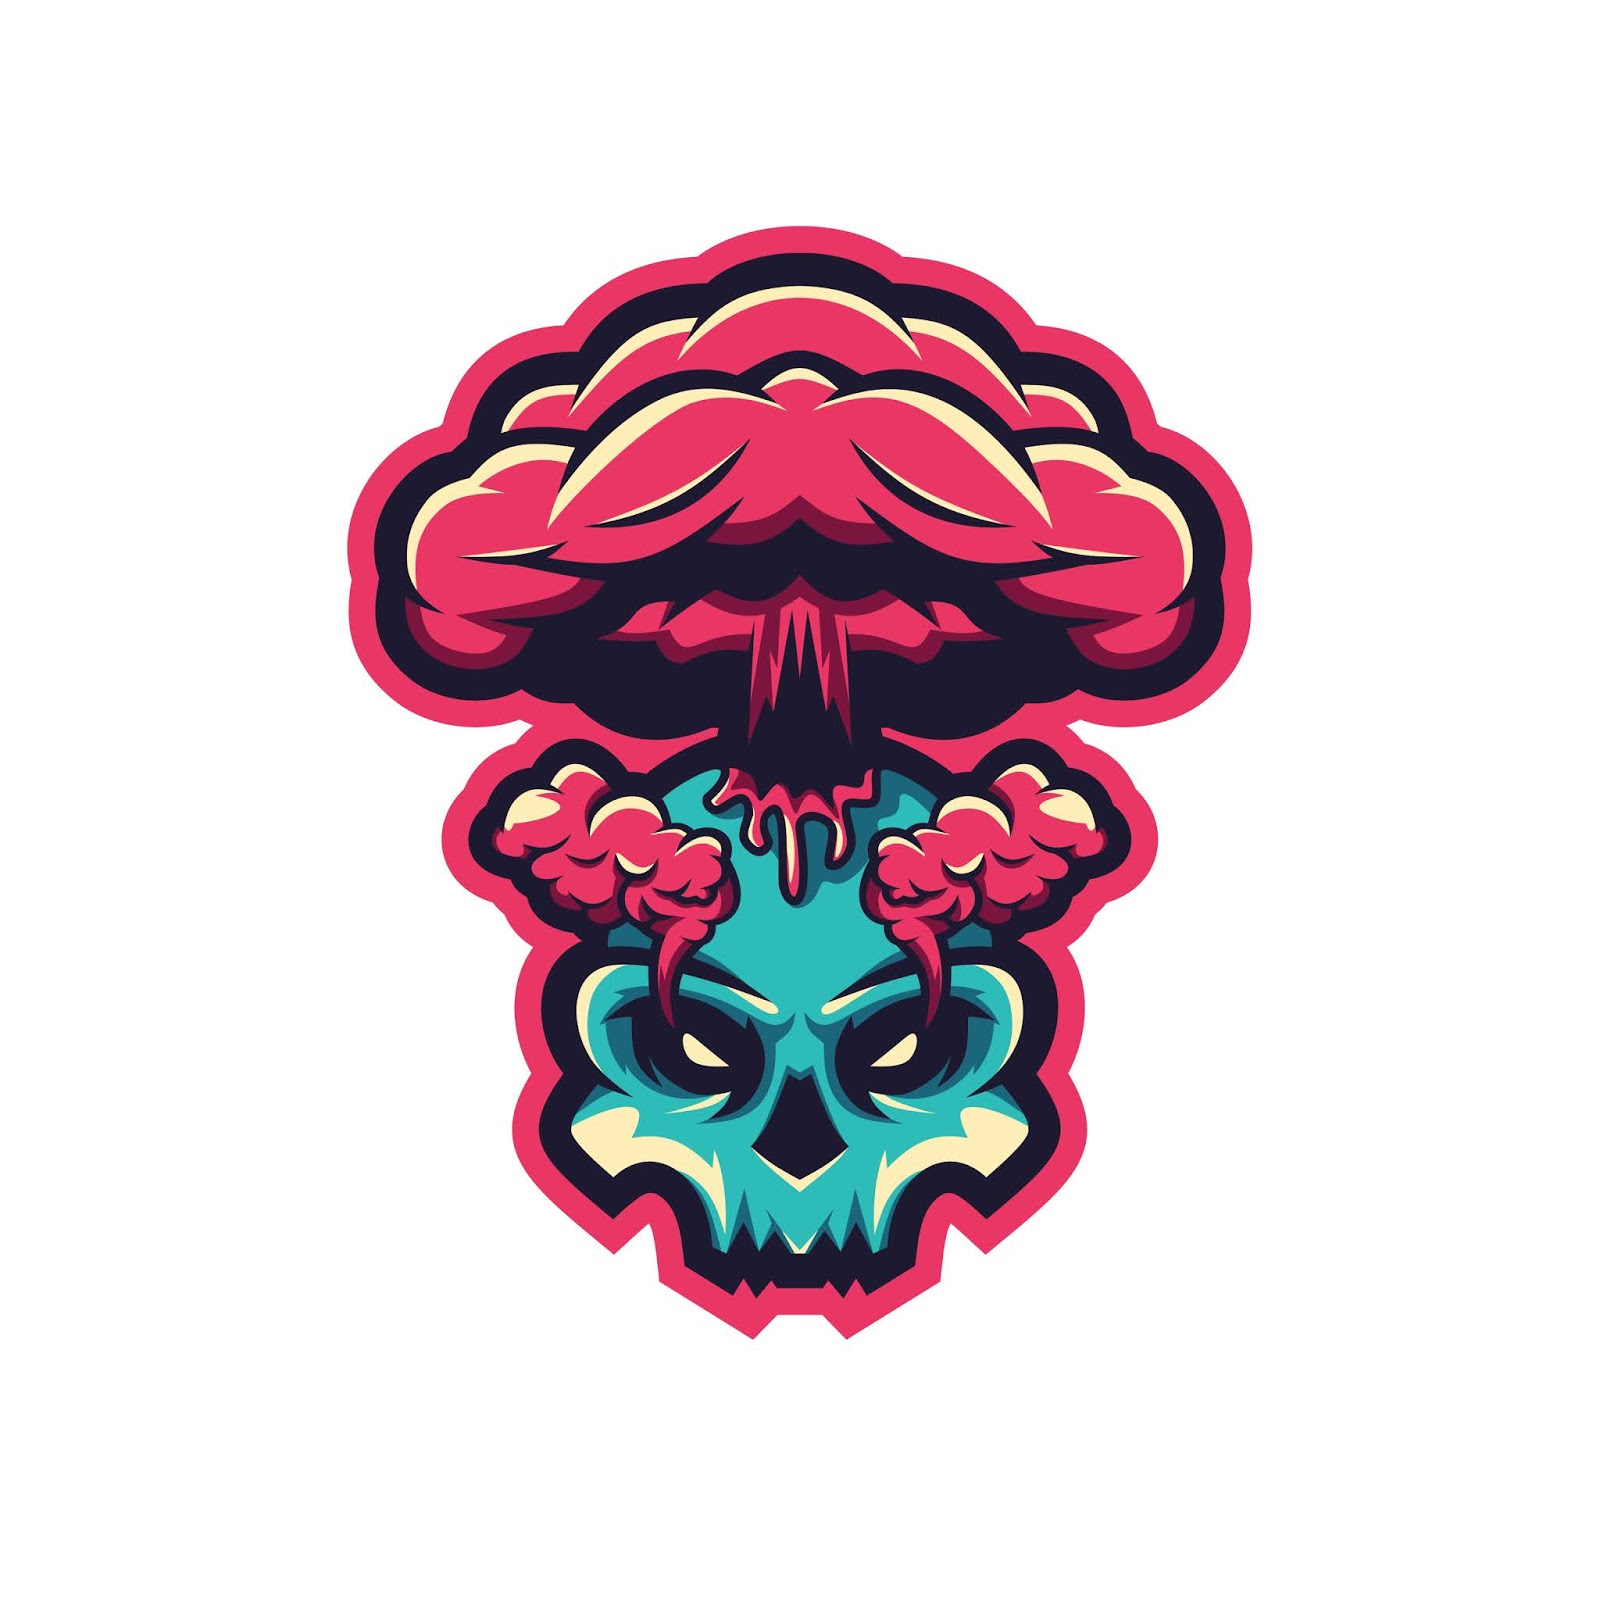 Skull Volcanos Illustration Premium Free Download Vector CDR, AI, EPS and PNG Formats